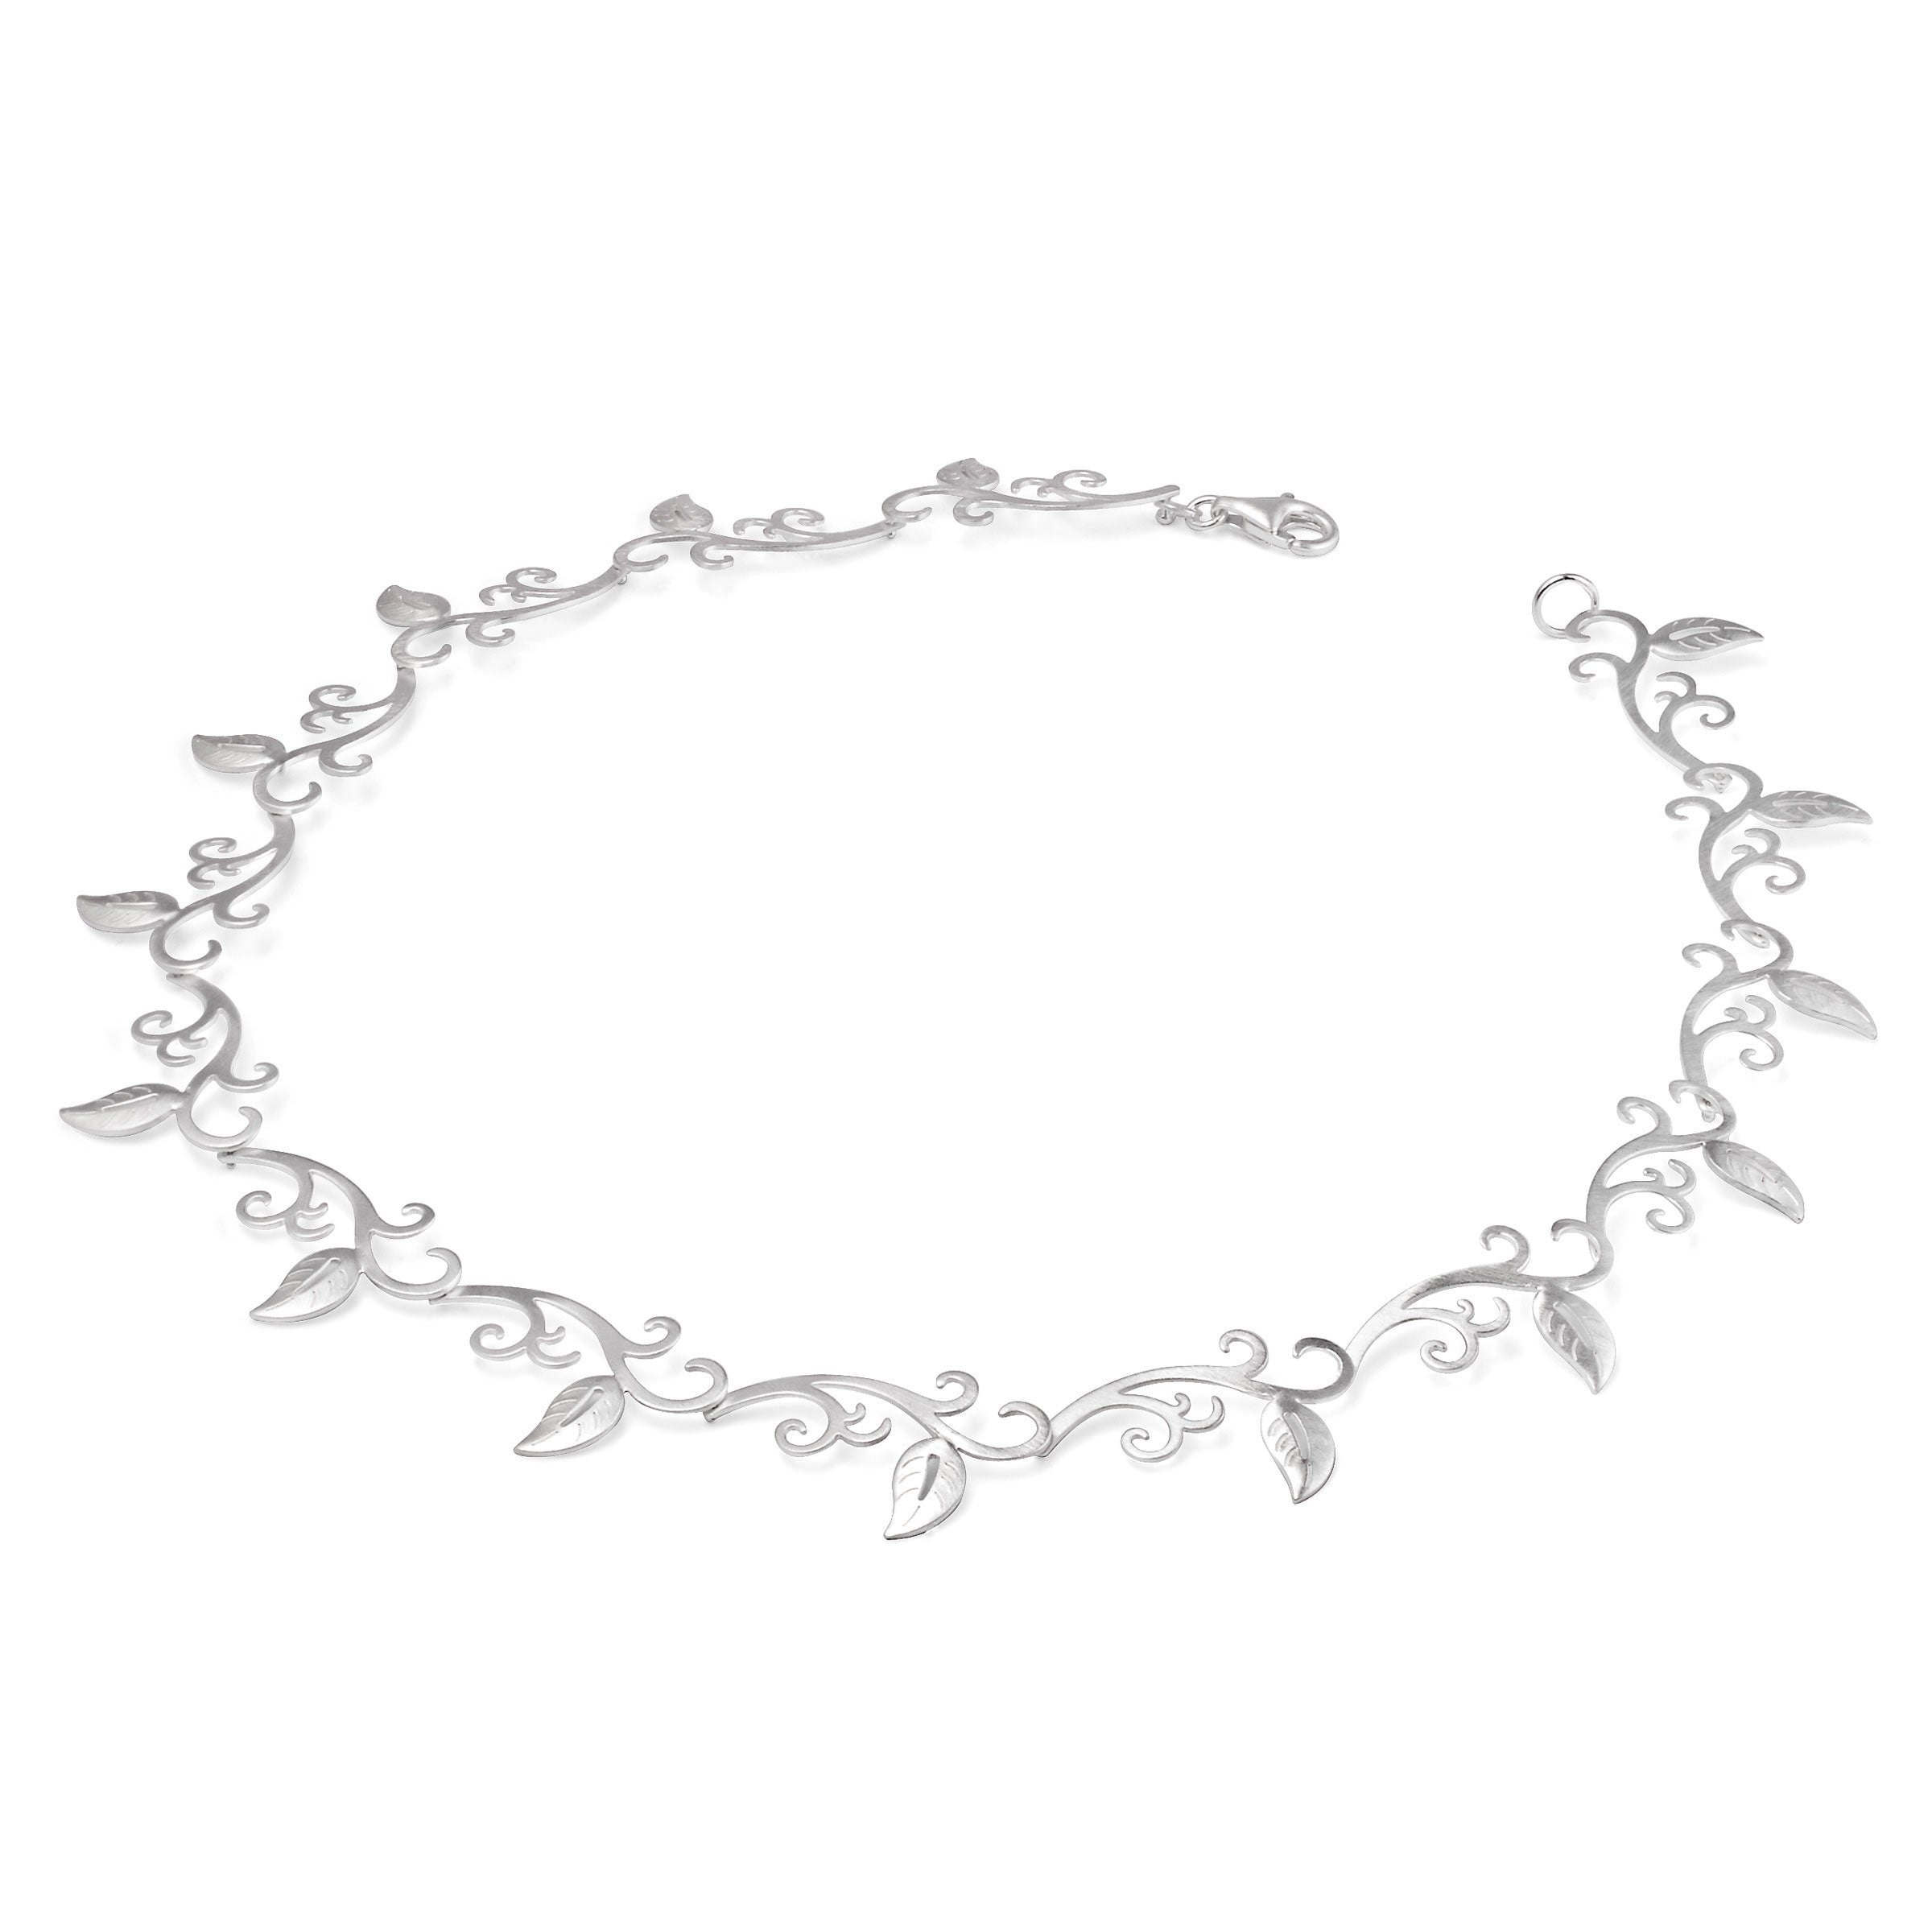 Lightweight Floral Open Design Necklace, Sterling Silver